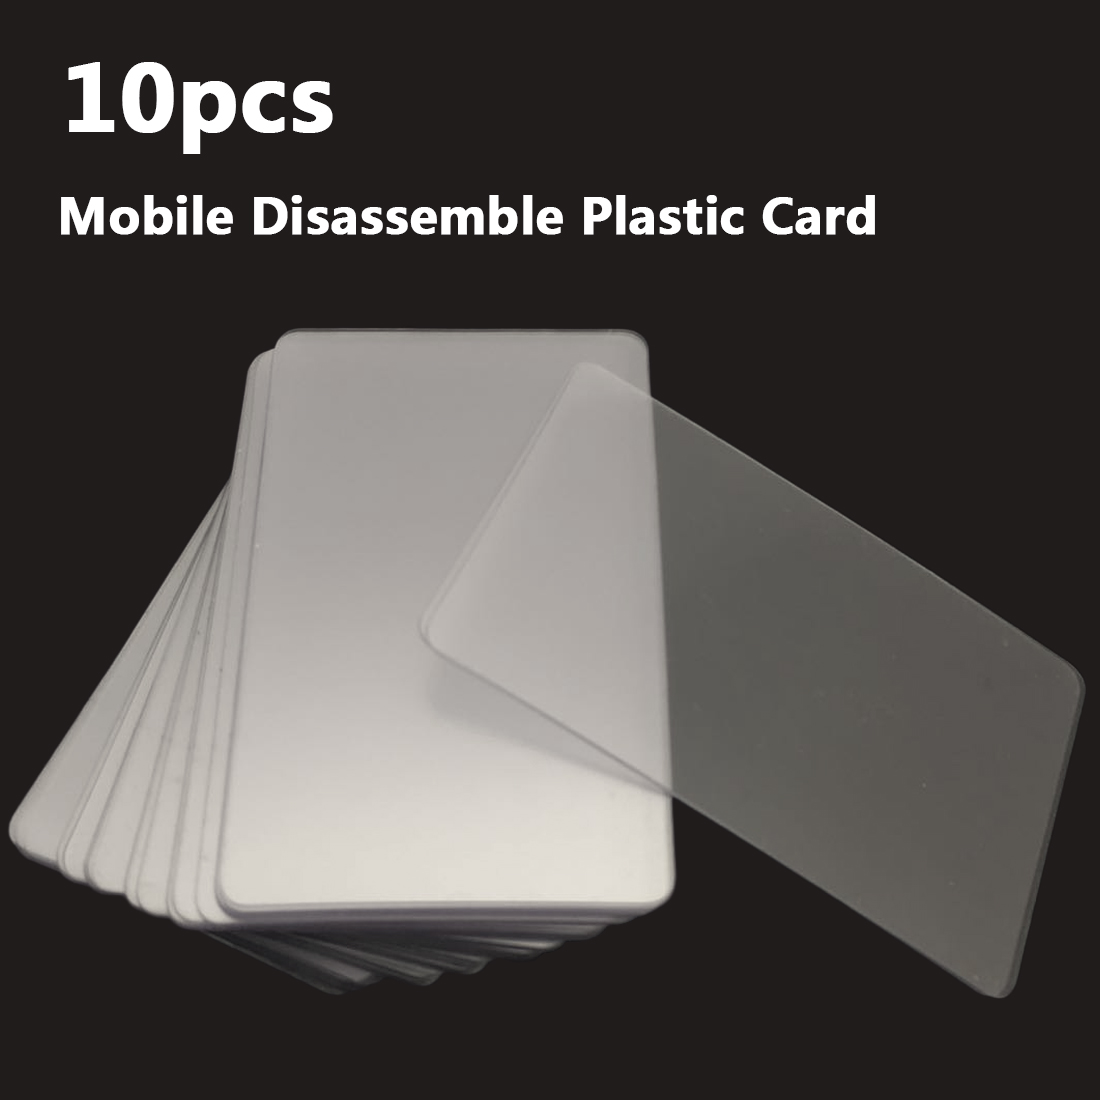 10pcs Handy Plastic Card Pry Opening Scraper for iPad Tablet Cell Phone Glued Screen / Back Housing Repair Tool image